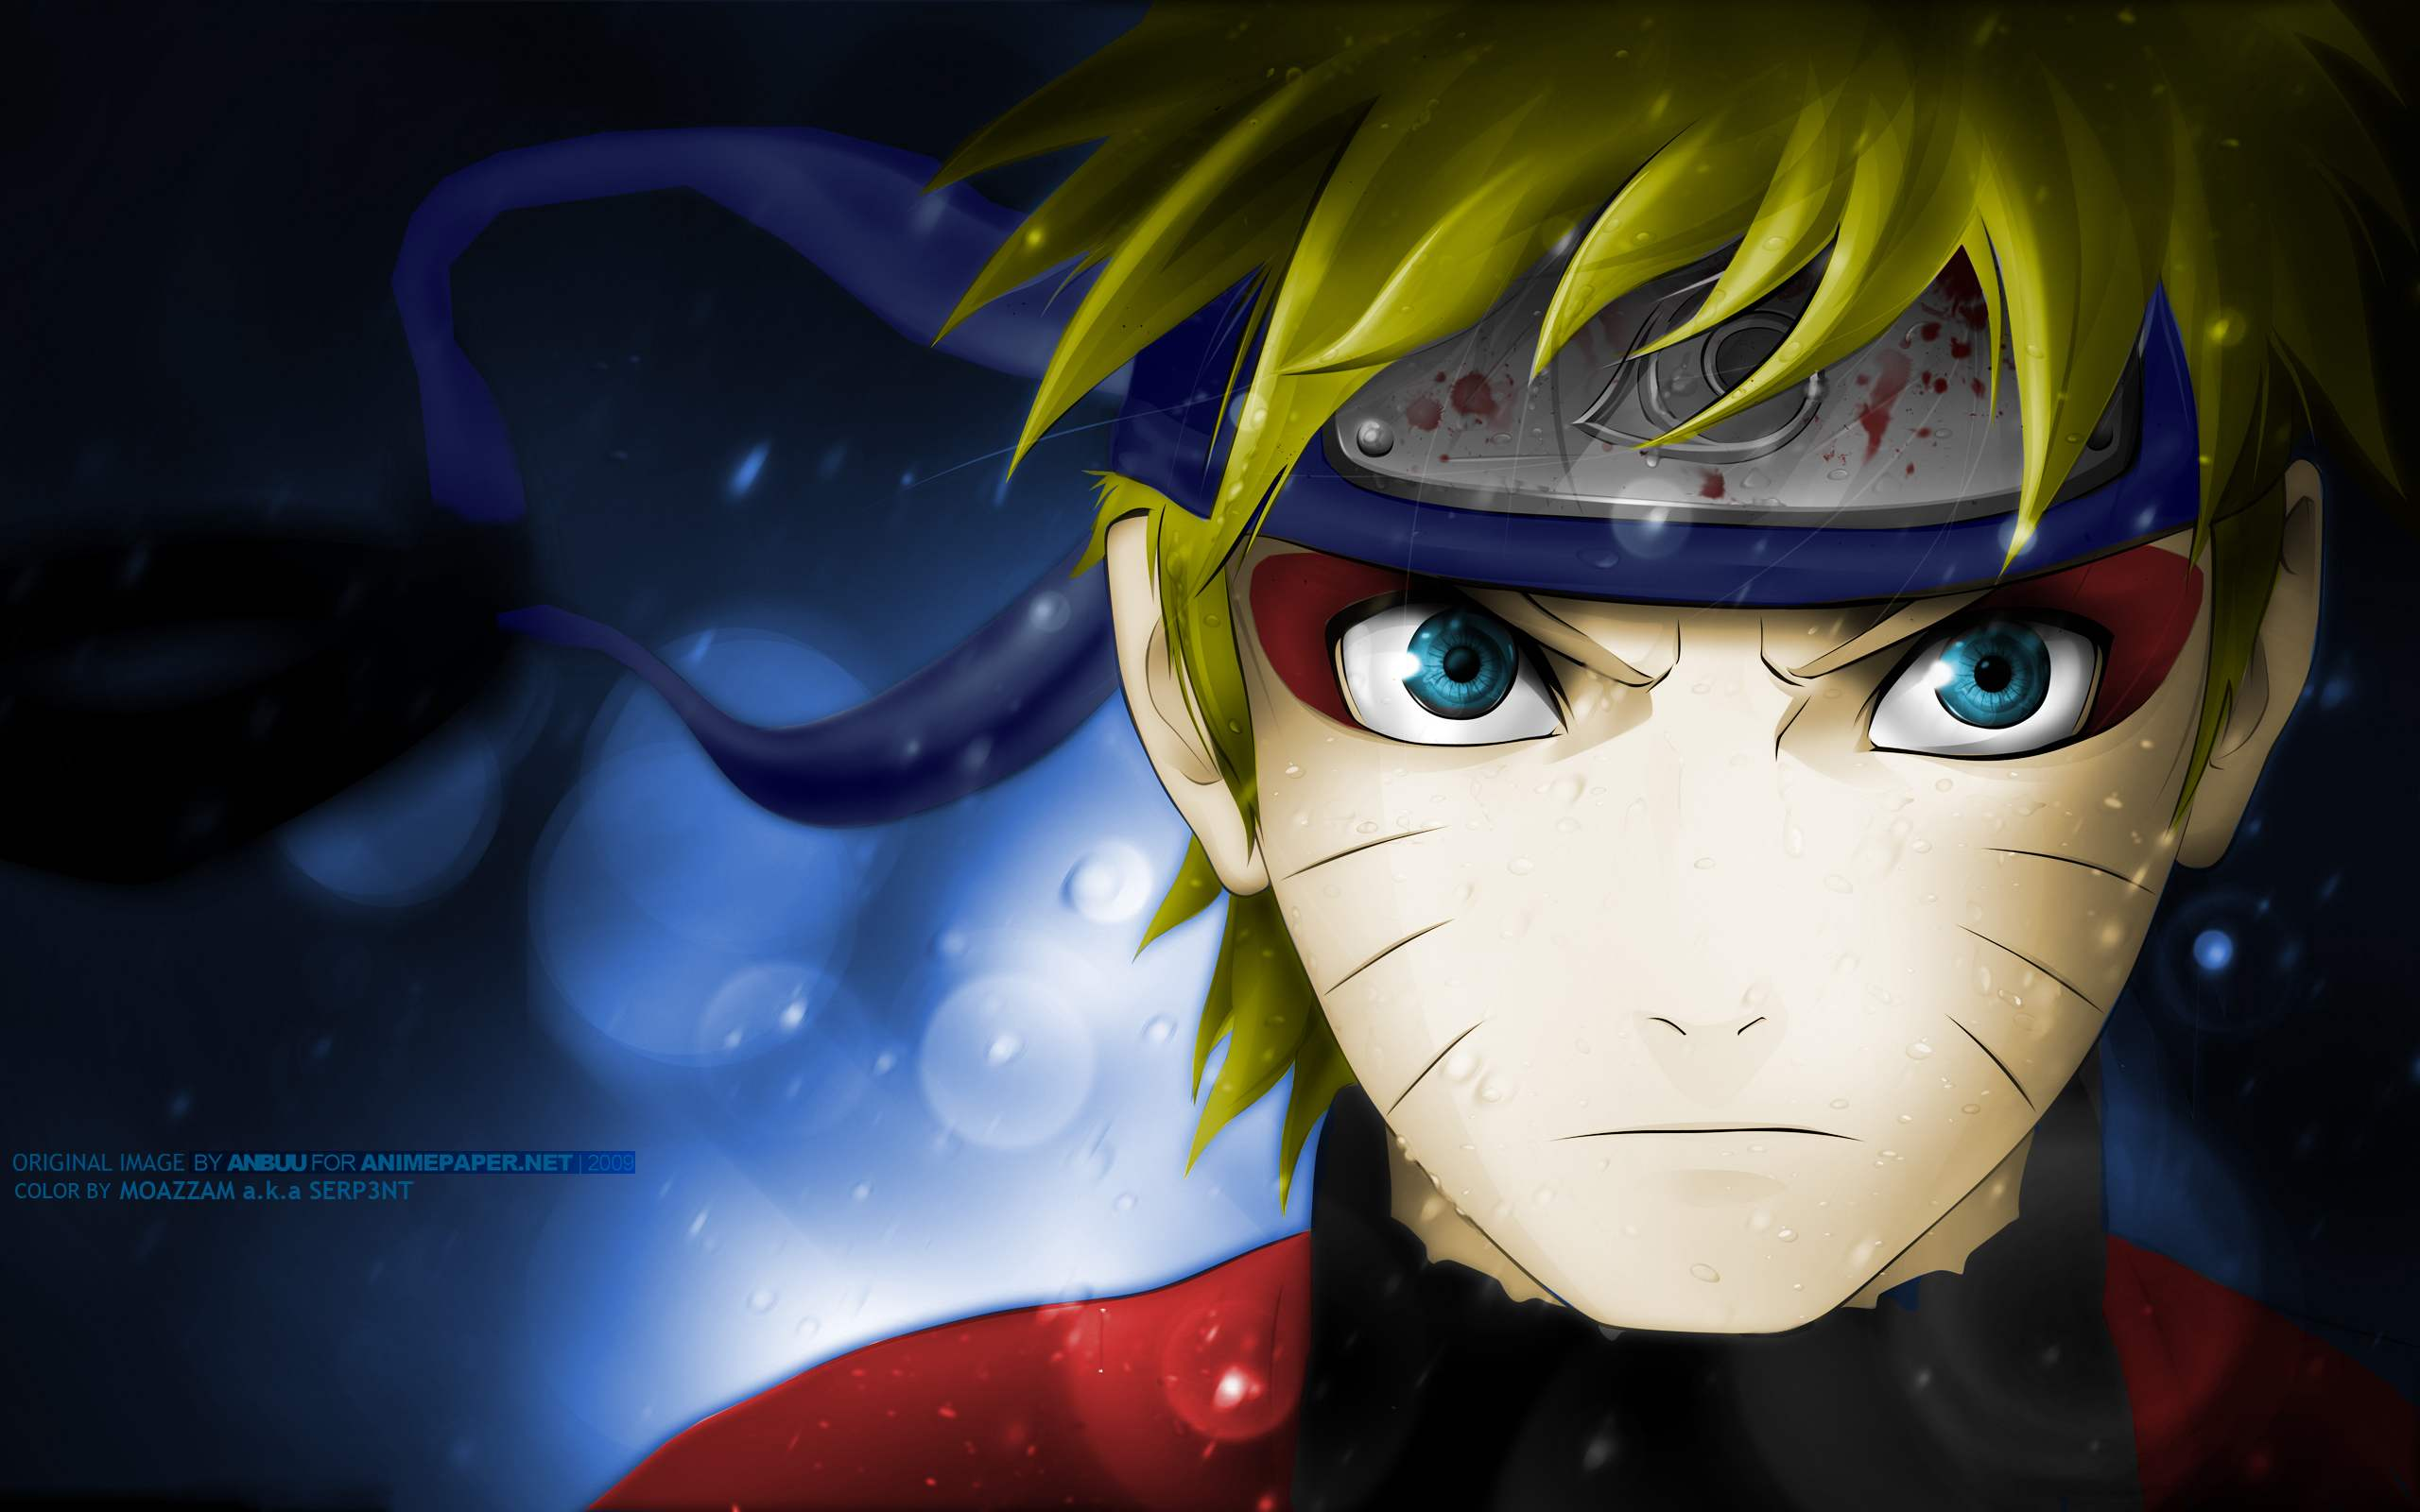 Naruto Shippuden Wallpapers Terbaru 2015 Wallpaper Cave